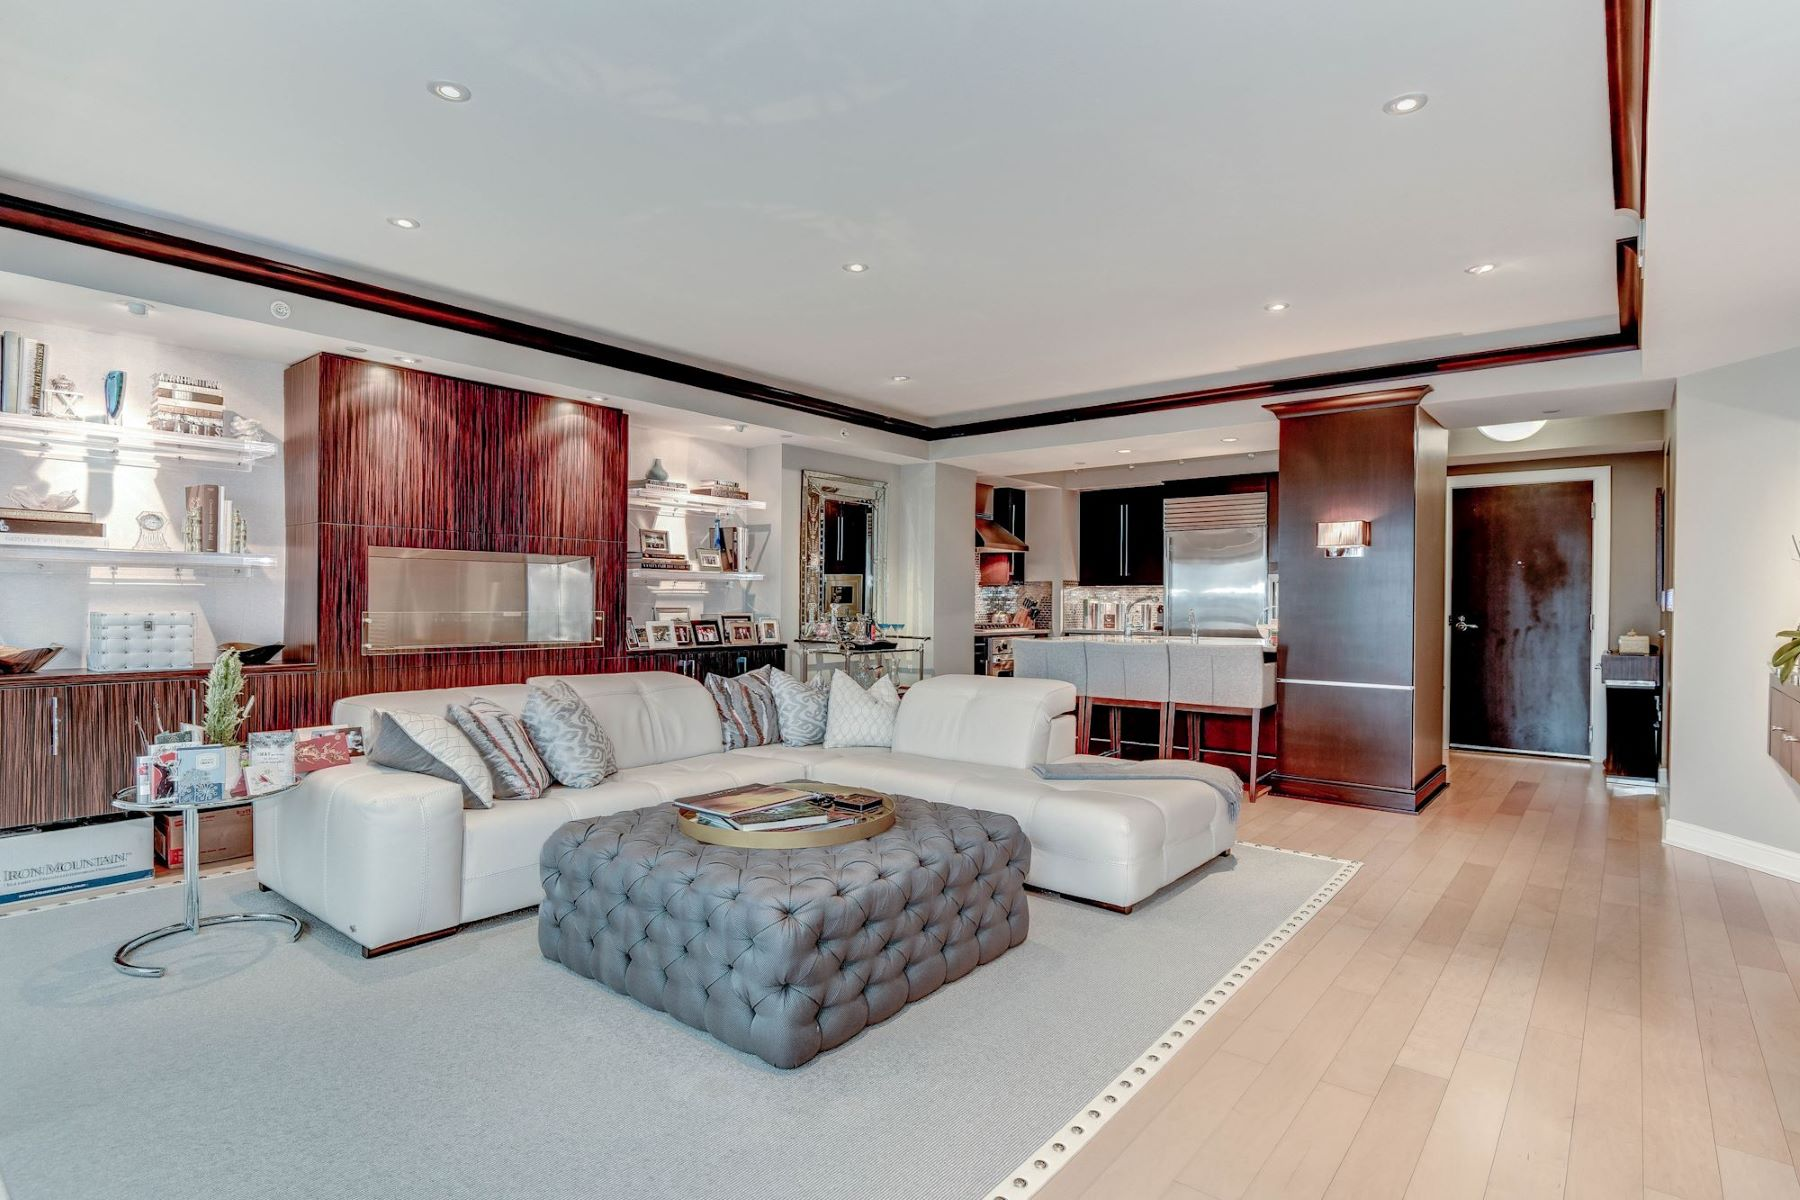 Condominium for Sale at The WaterView 1111 19th St N 2403 Arlington, Virginia, 22209 United States